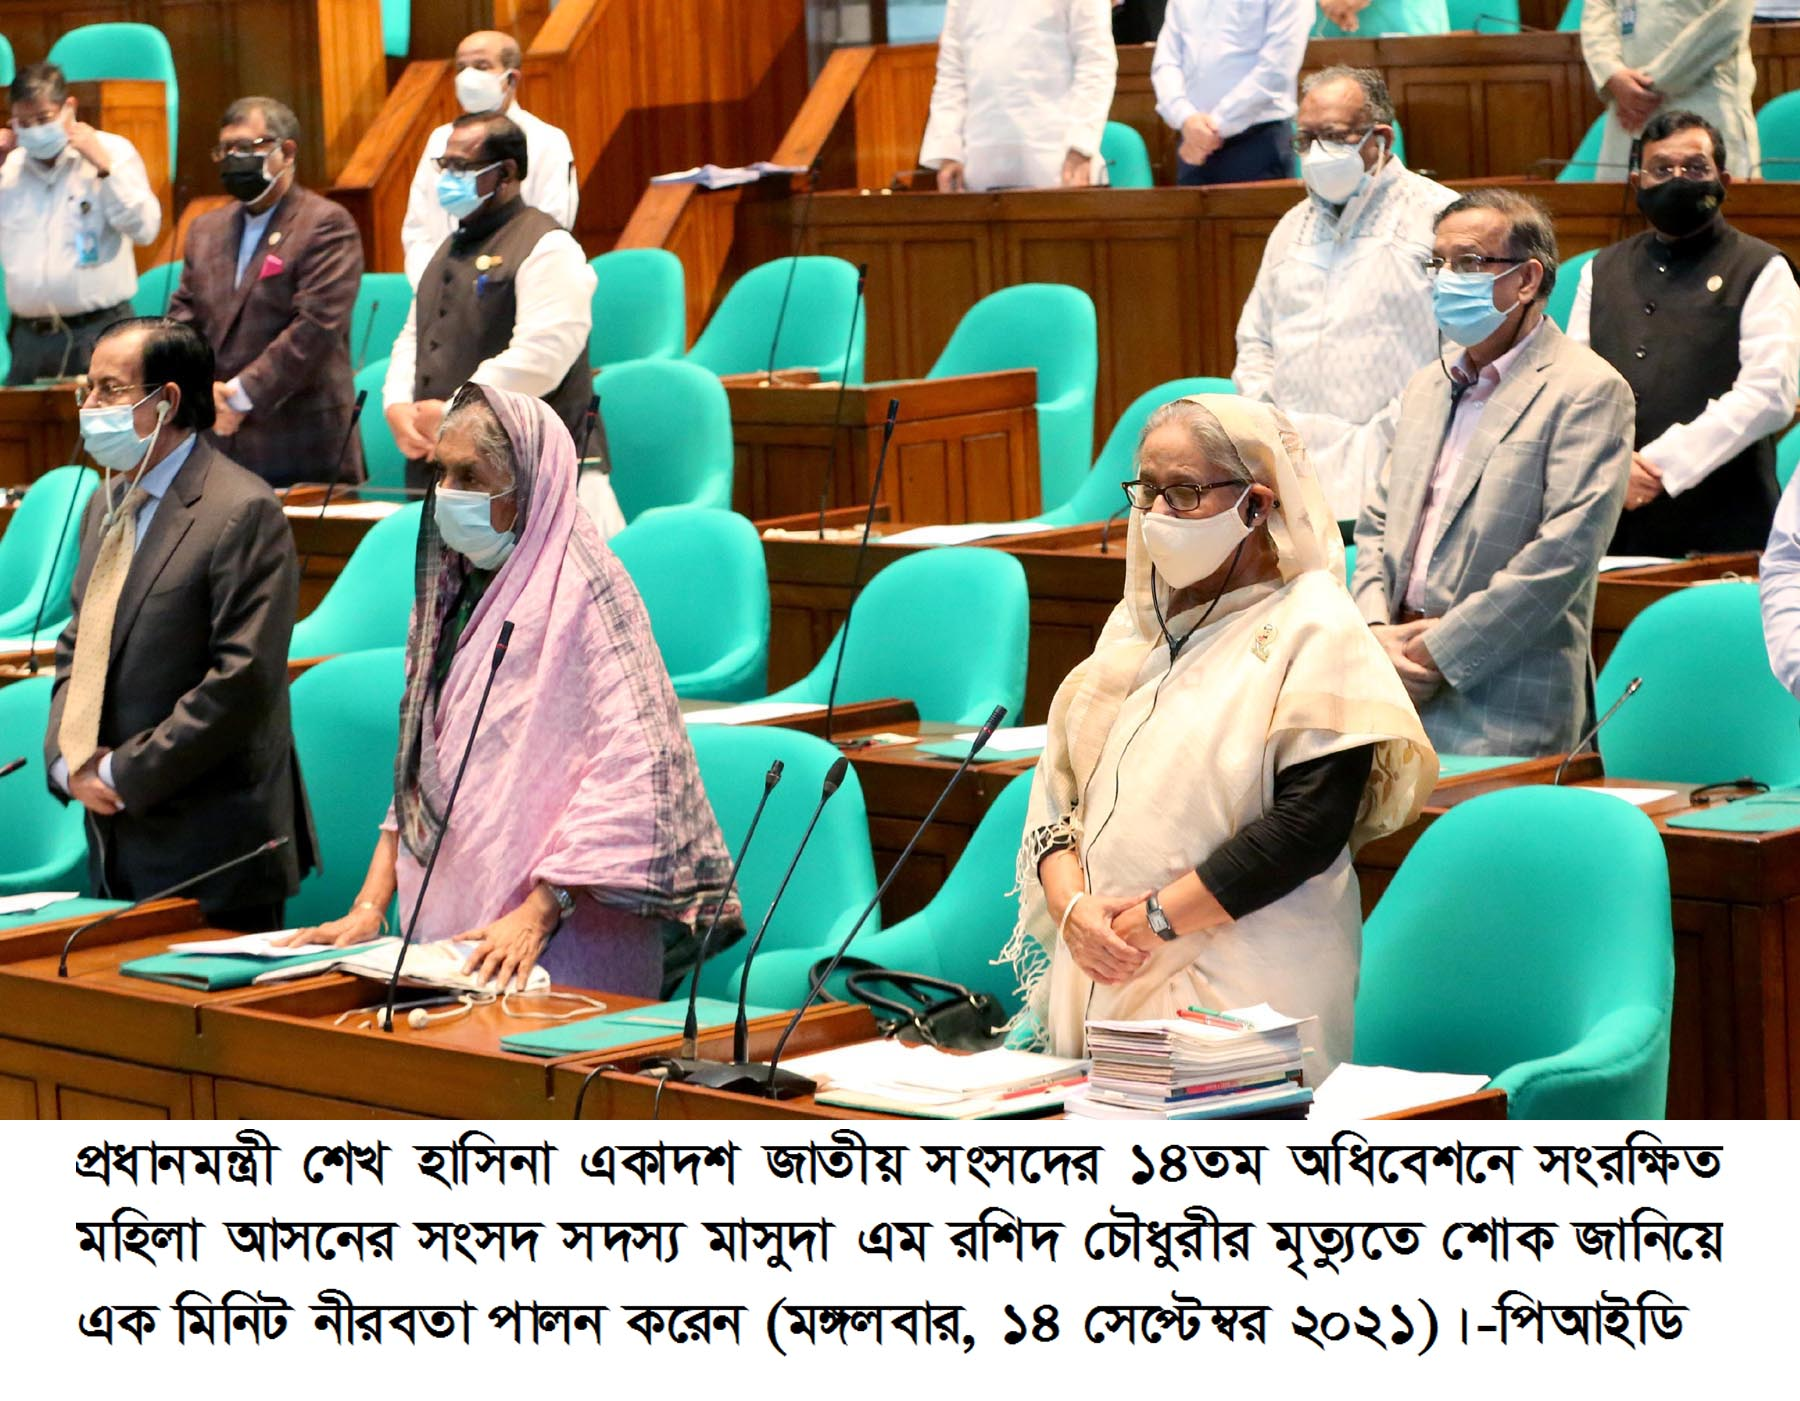 PM Sheikh Hasina attends special event